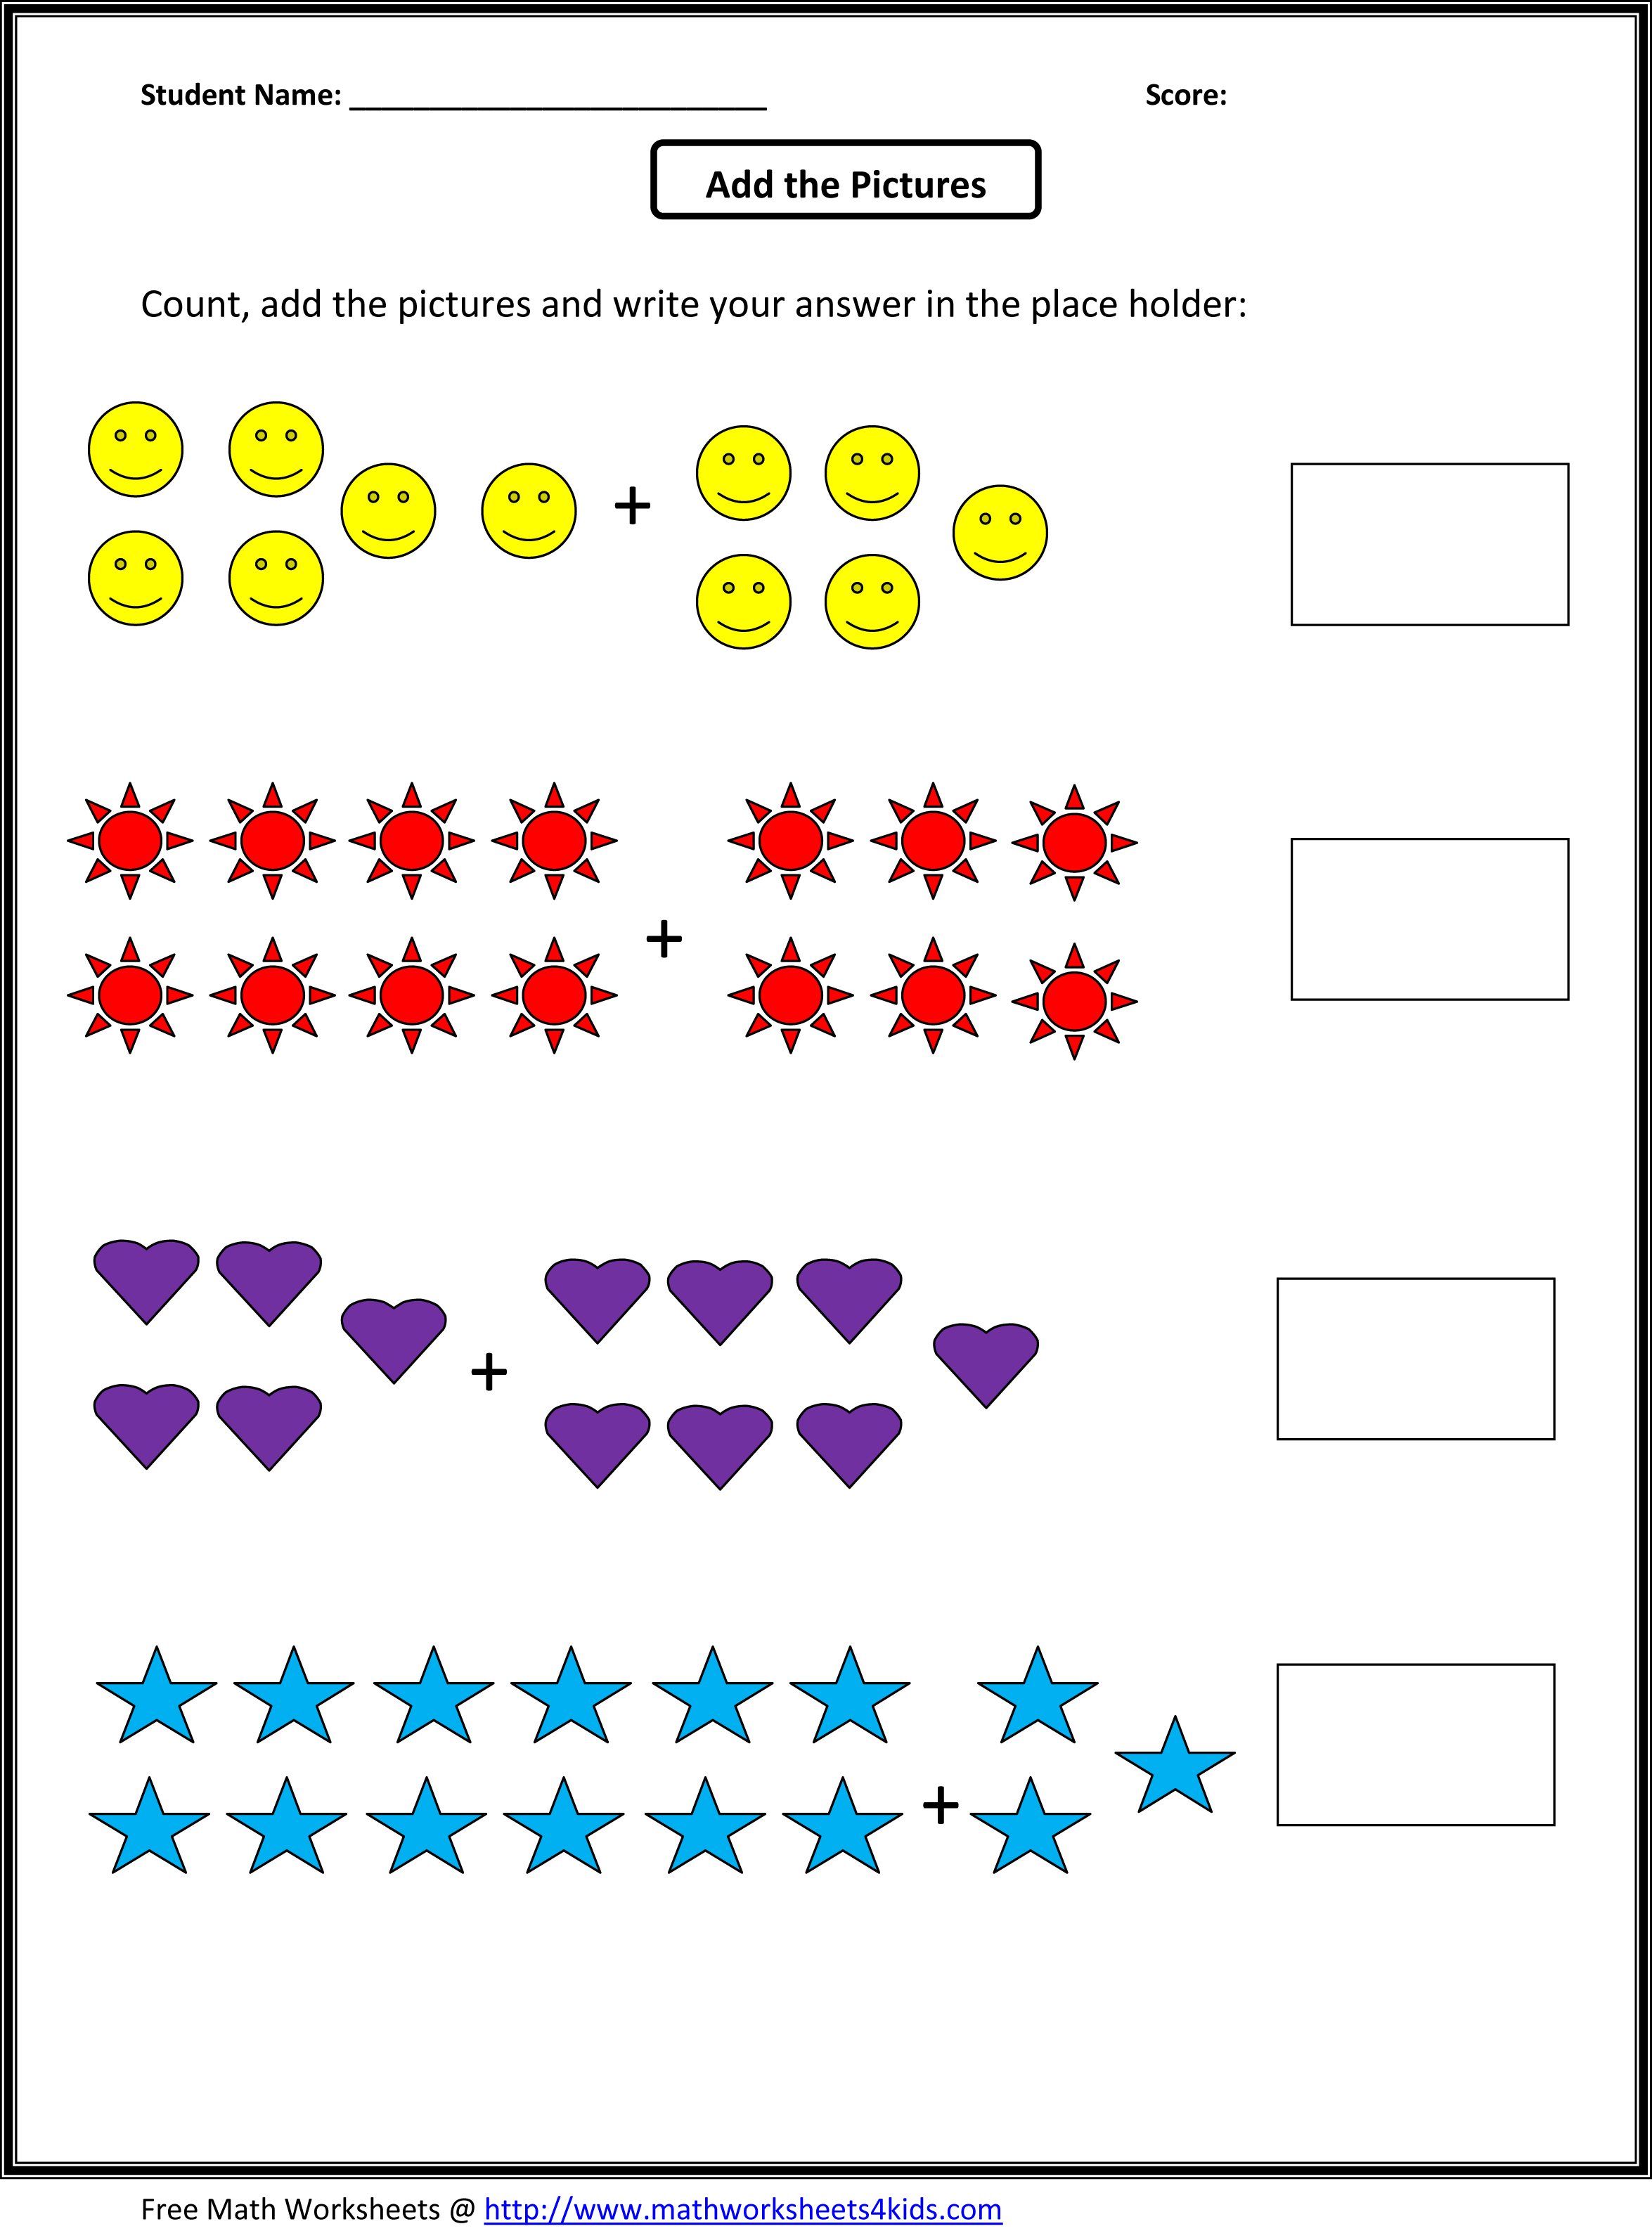 Weirdmailus  Picturesque Grade  Maths Worksheet  Reocurent With Exciting Math Worksheets For St Grade Free  Reocurent With Attractive Free Phonics Printable Worksheets Also Where Worksheet In Addition Worksheet On Reading Comprehension And Free Printable English Worksheets For Kids As Well As Worksheet F Additionally Kumon Maths Worksheets Printable From Reocurentcom With Weirdmailus  Exciting Grade  Maths Worksheet  Reocurent With Attractive Math Worksheets For St Grade Free  Reocurent And Picturesque Free Phonics Printable Worksheets Also Where Worksheet In Addition Worksheet On Reading Comprehension From Reocurentcom